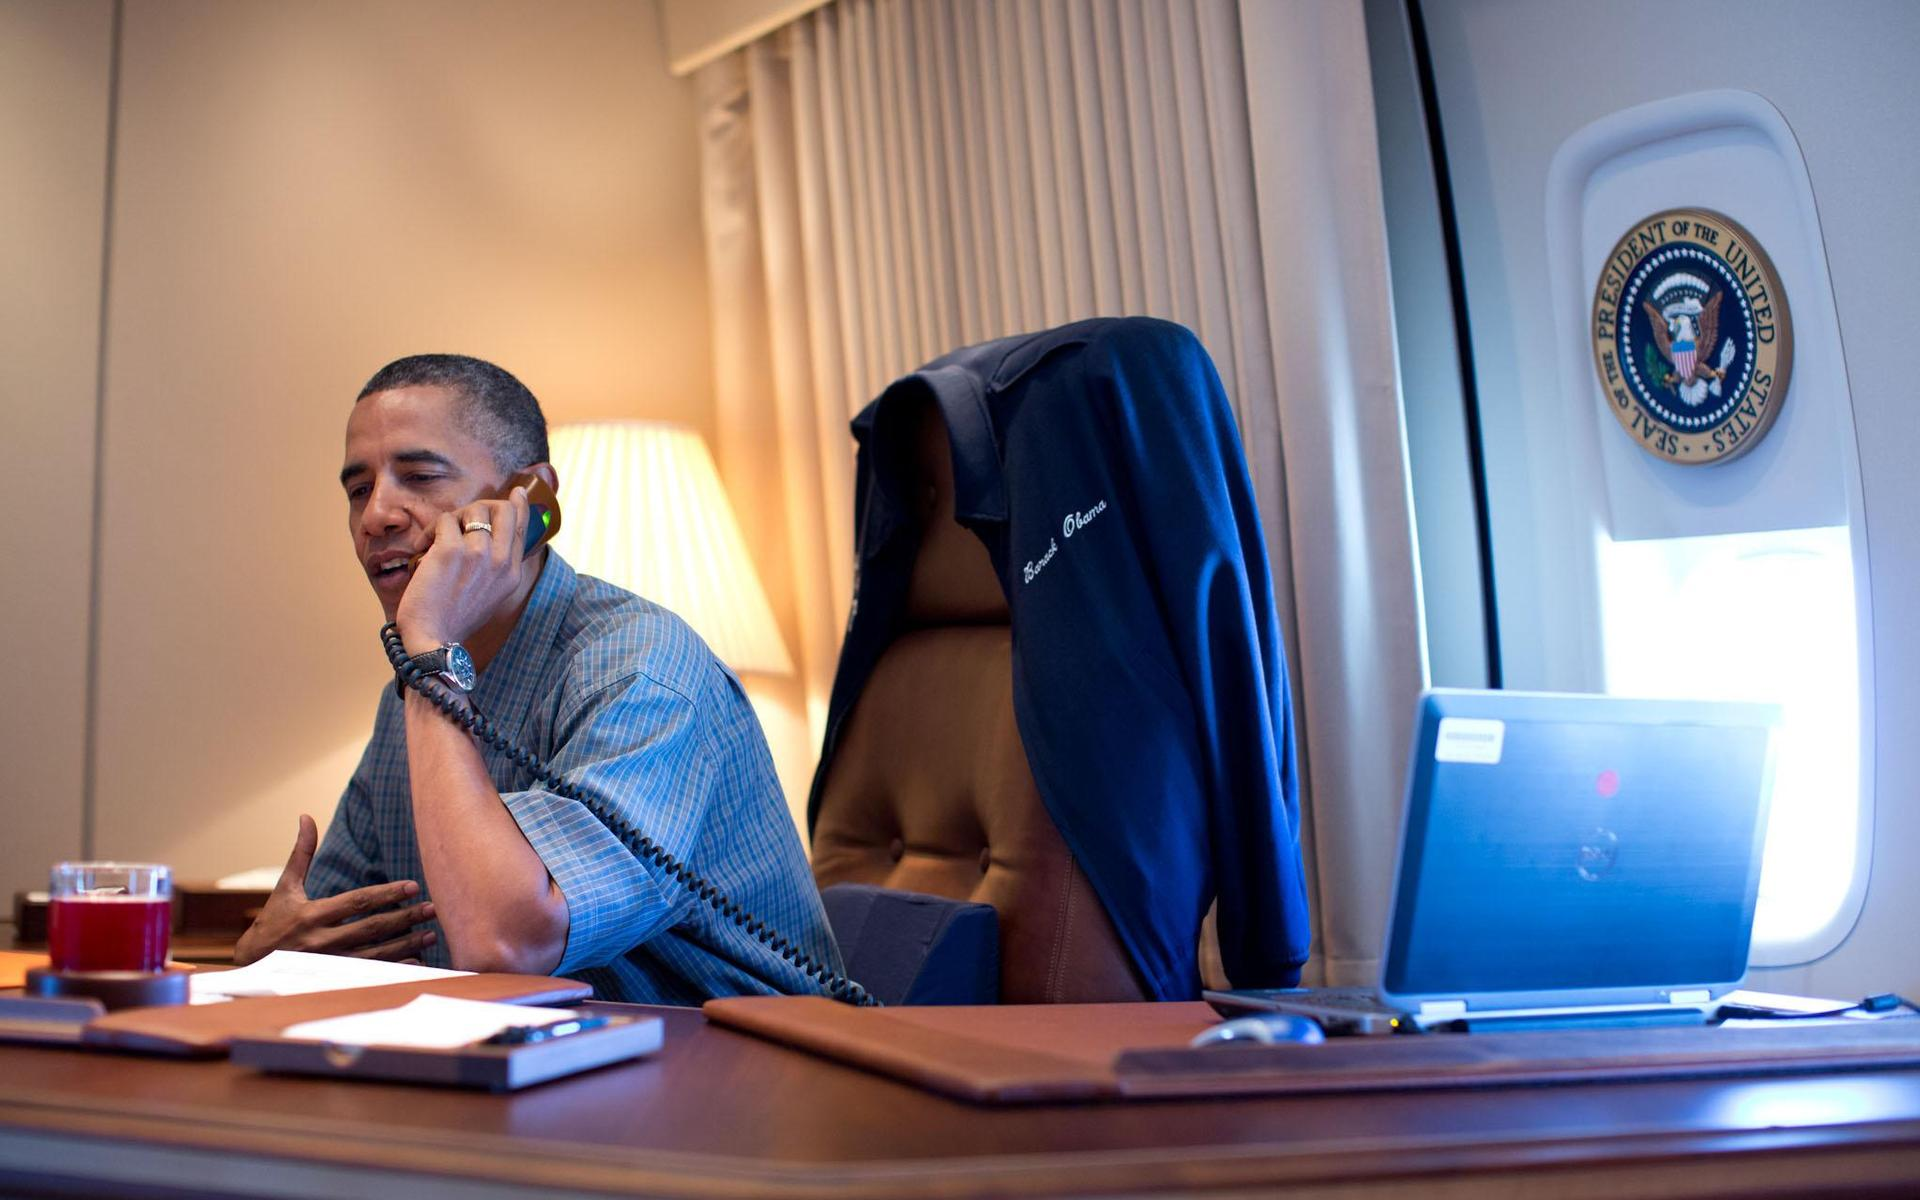 barack obama desktop wallpaper 59510